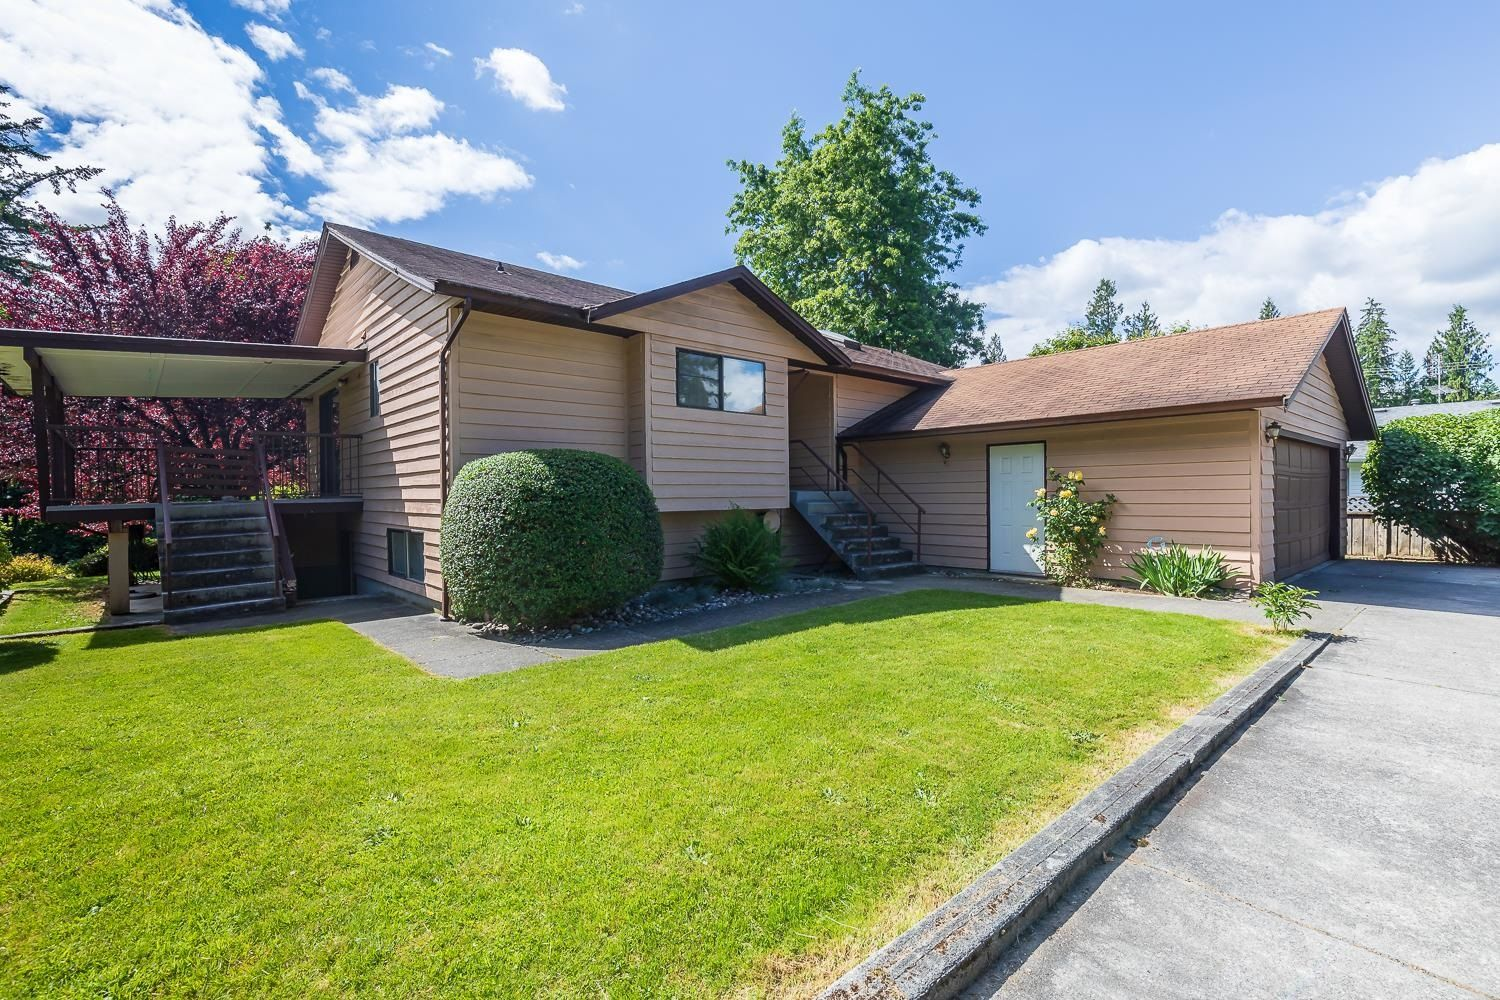 Main Photo: 31856 SILVERDALE Avenue in Mission: Mission BC House for sale : MLS®# R2611445